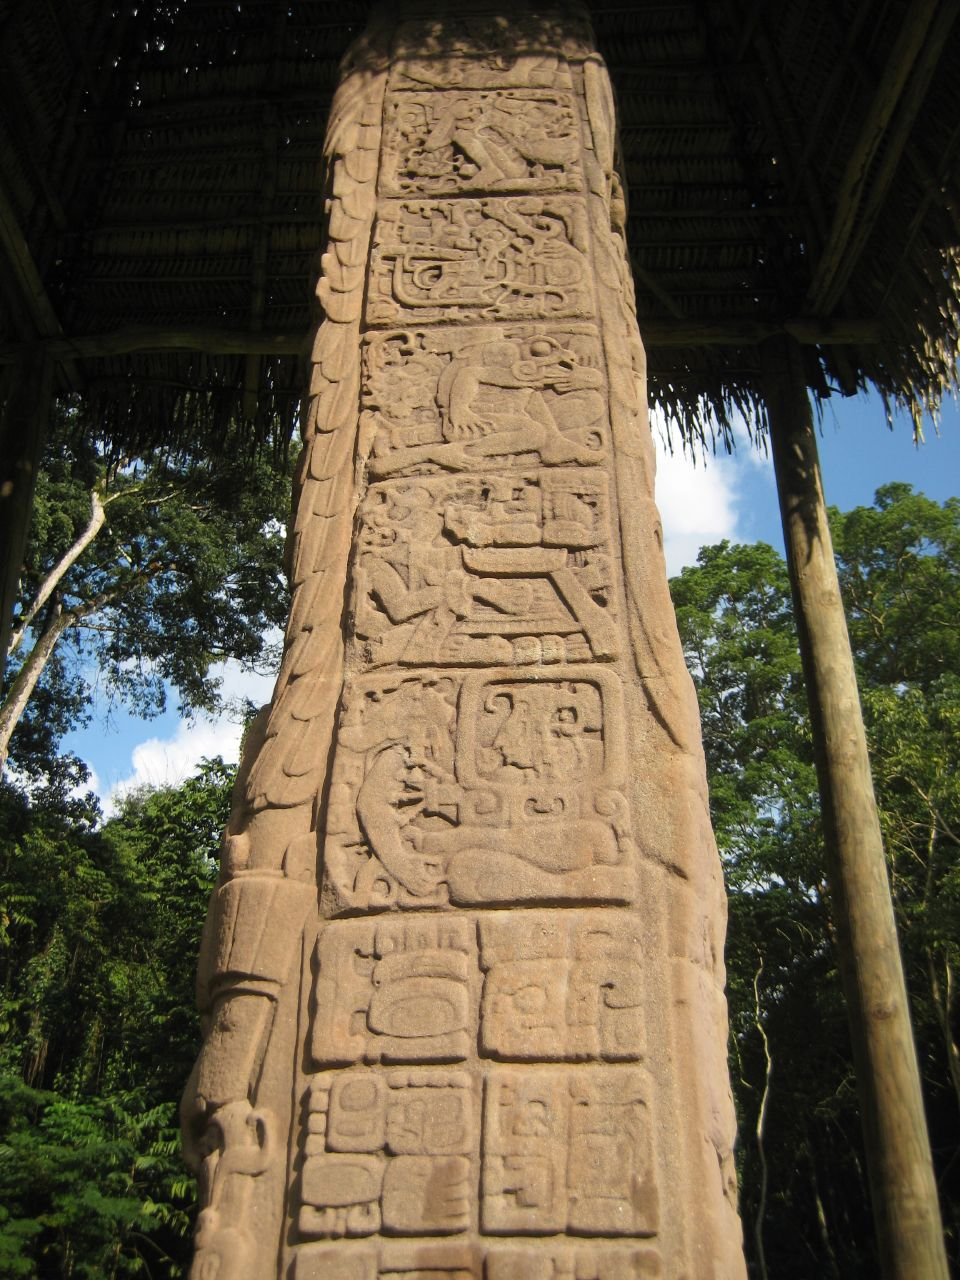 Full figure glyphs on the west side of Stela D at Quiriguá, Guatemala. Photo taken on January 27, 2008.